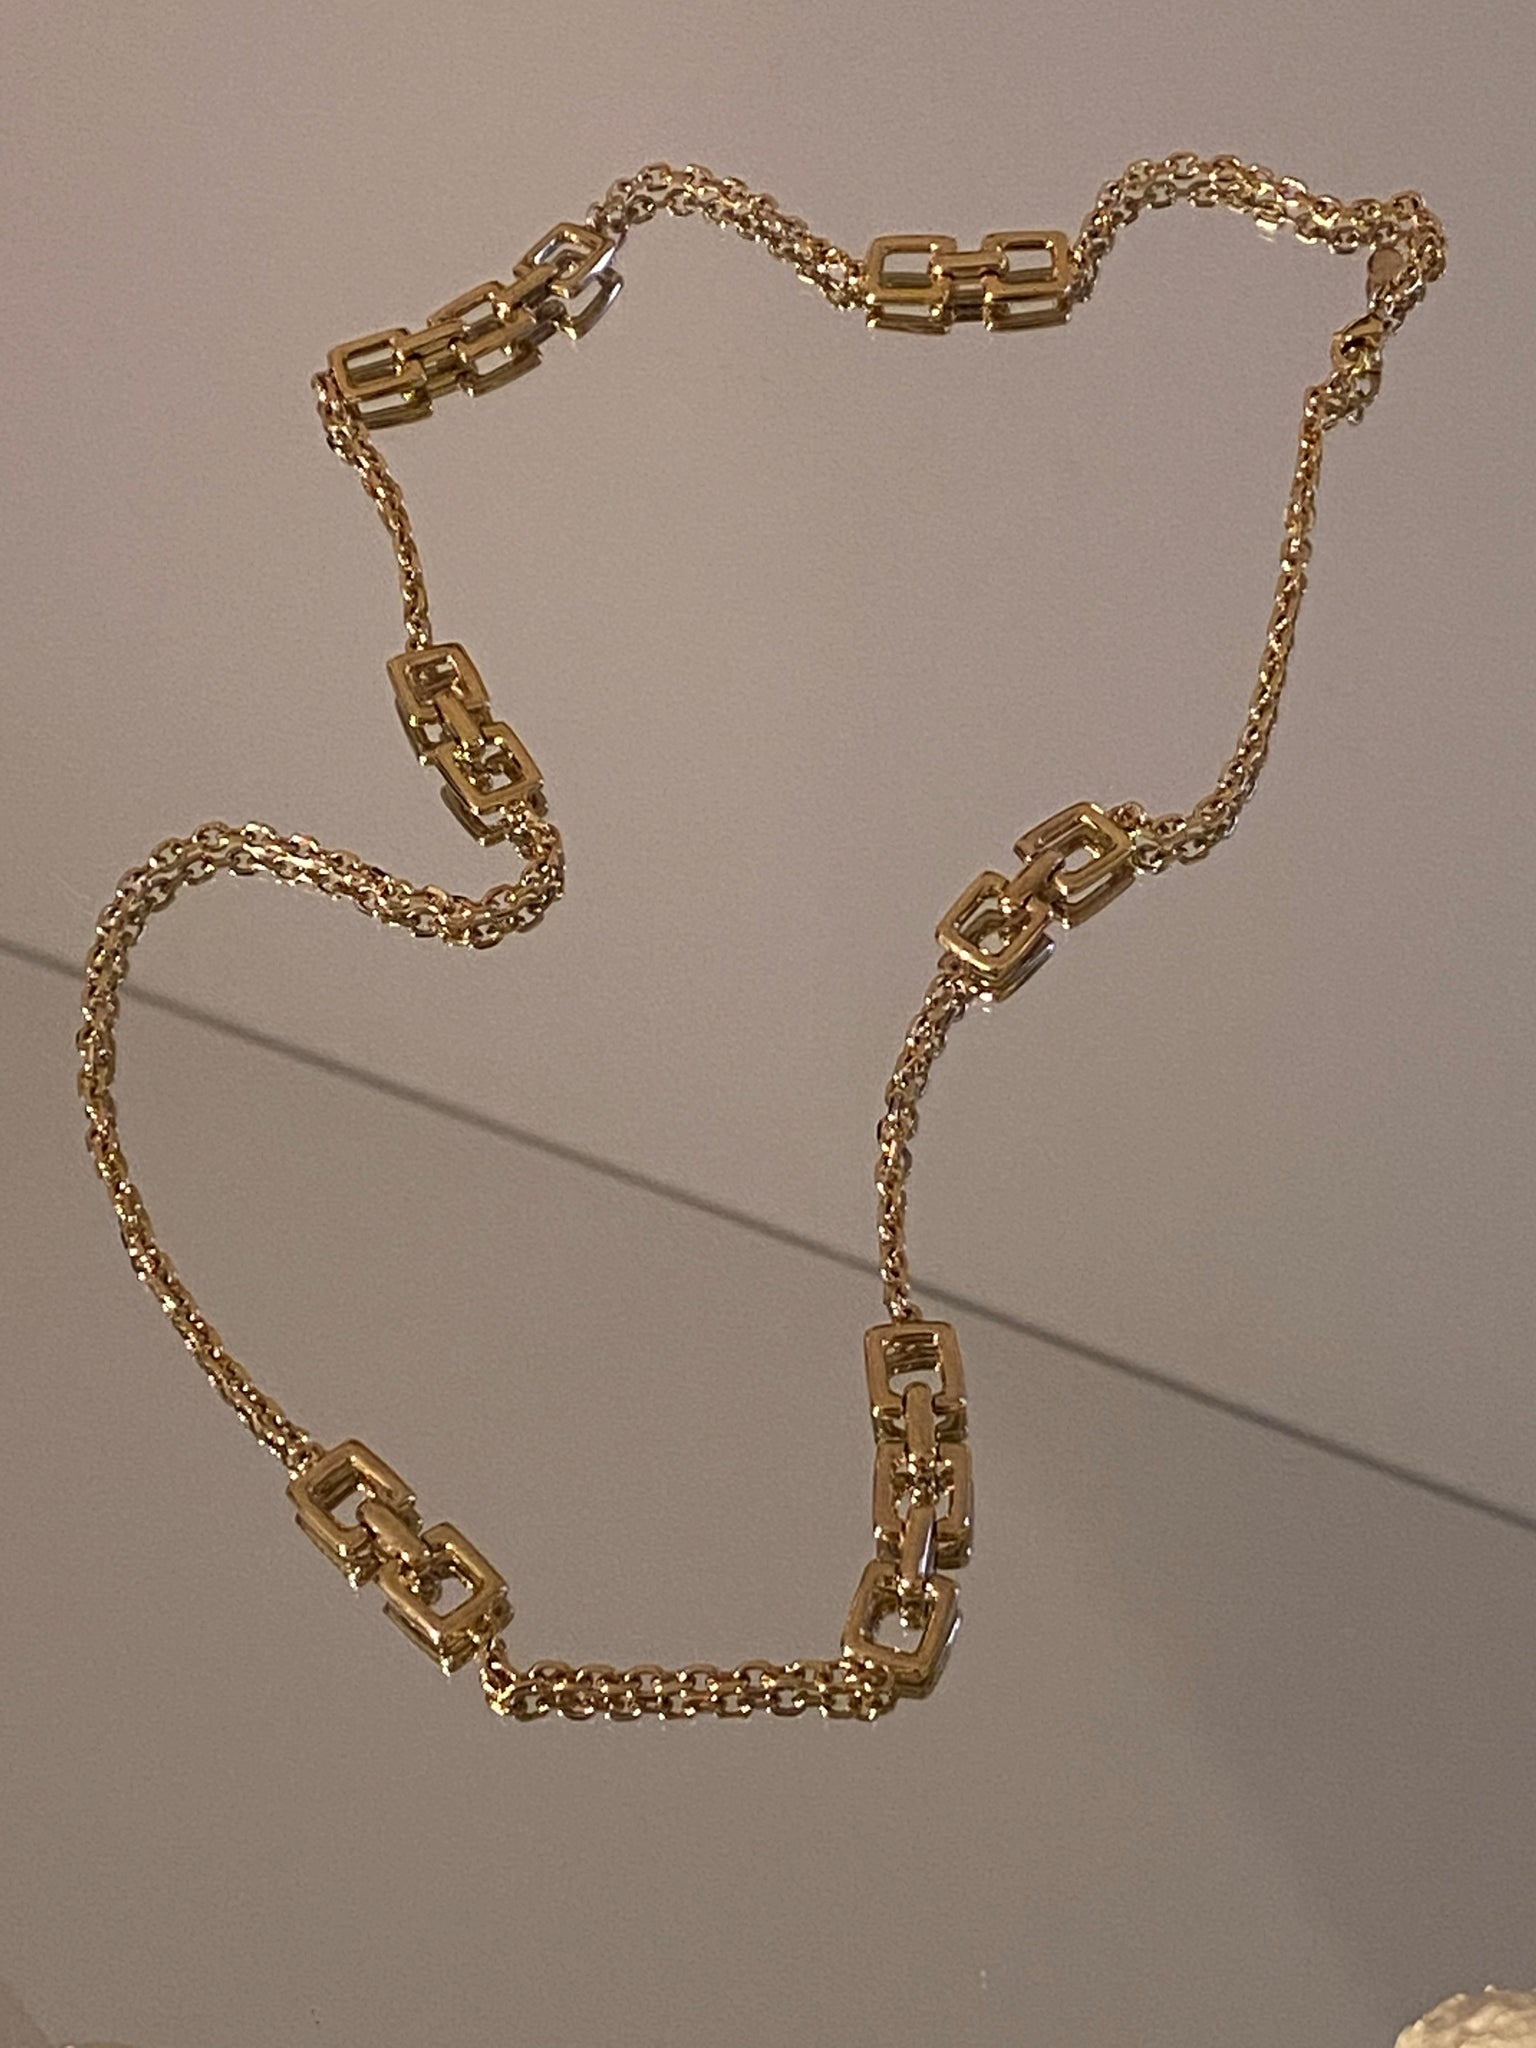 1970-1980 Gold Plated Square Link Chain Necklace